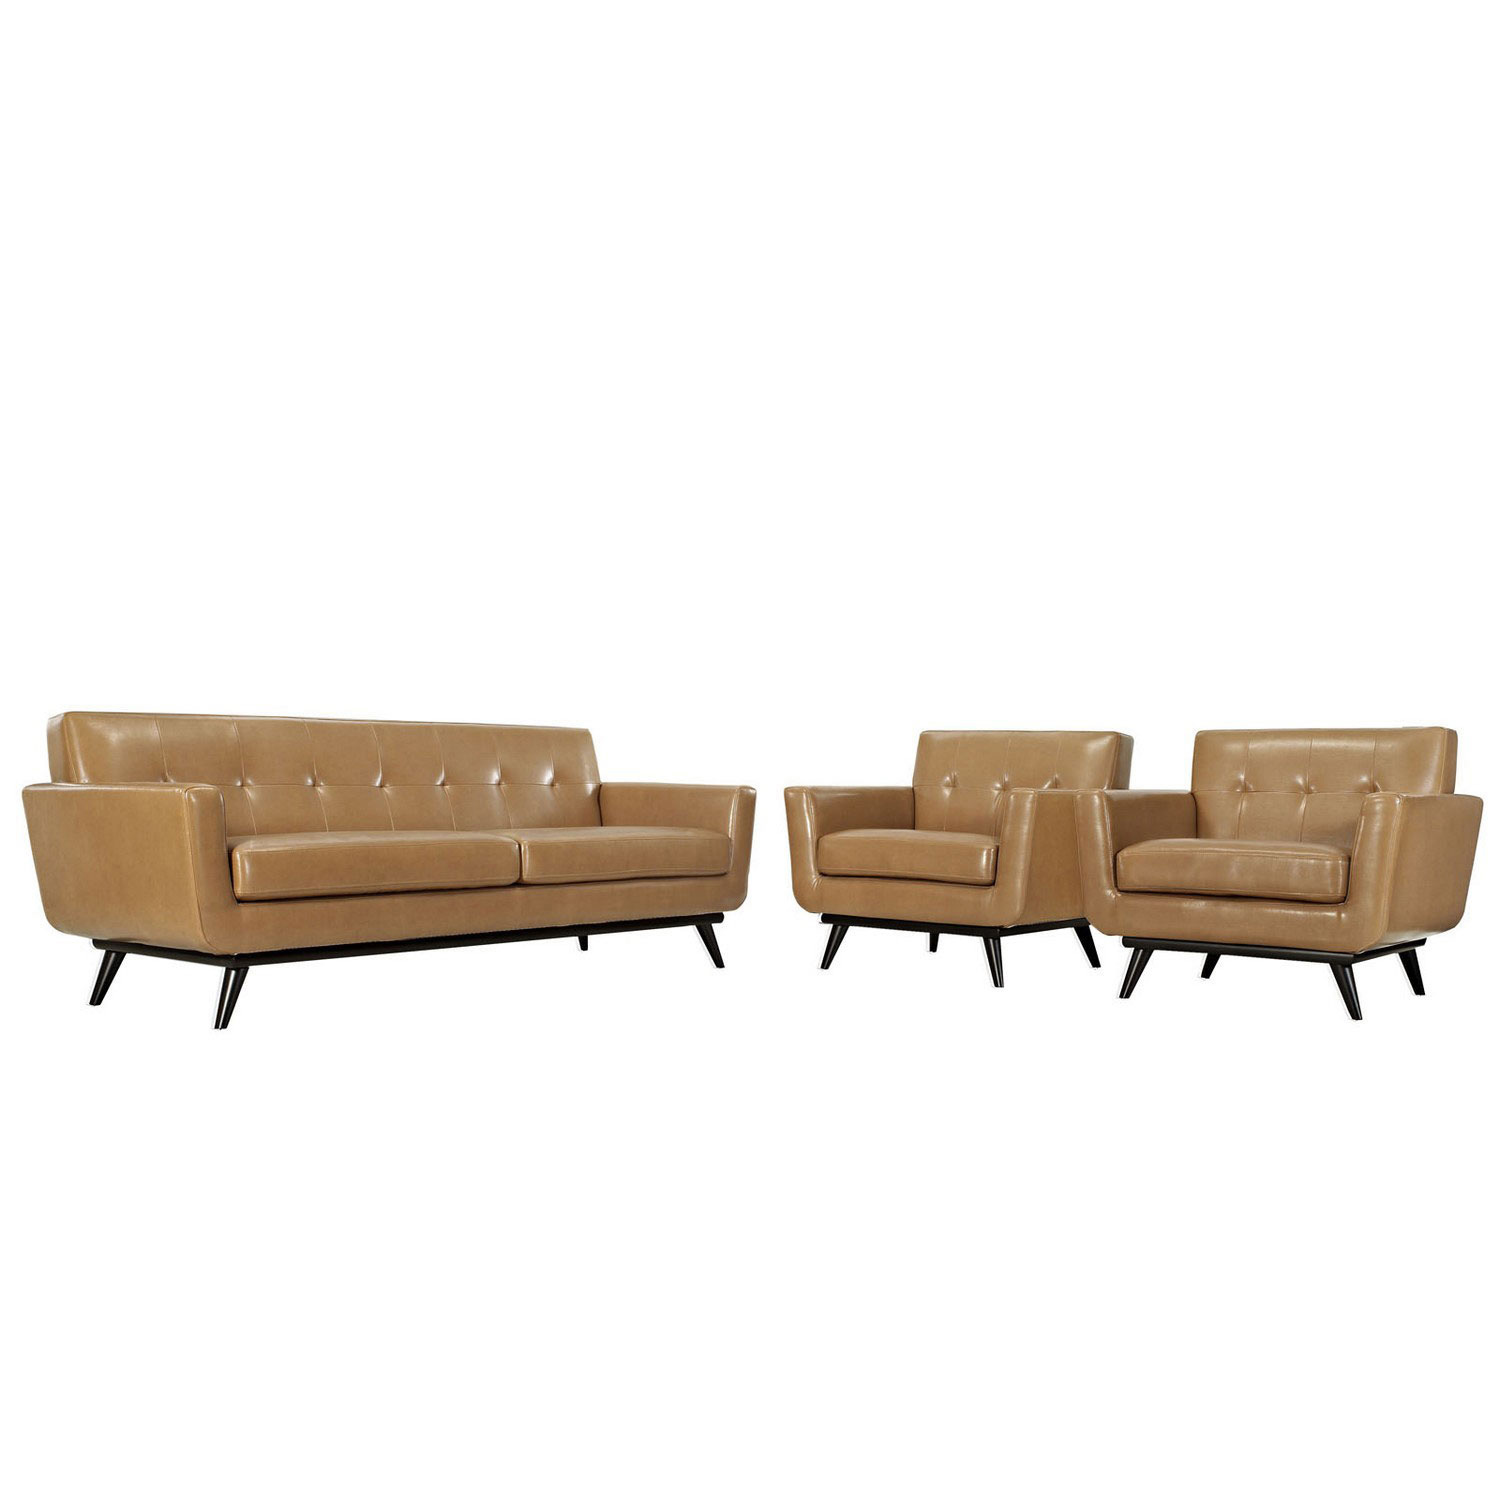 Modway Engage 3 Piece Leather Living Room Set - Tan